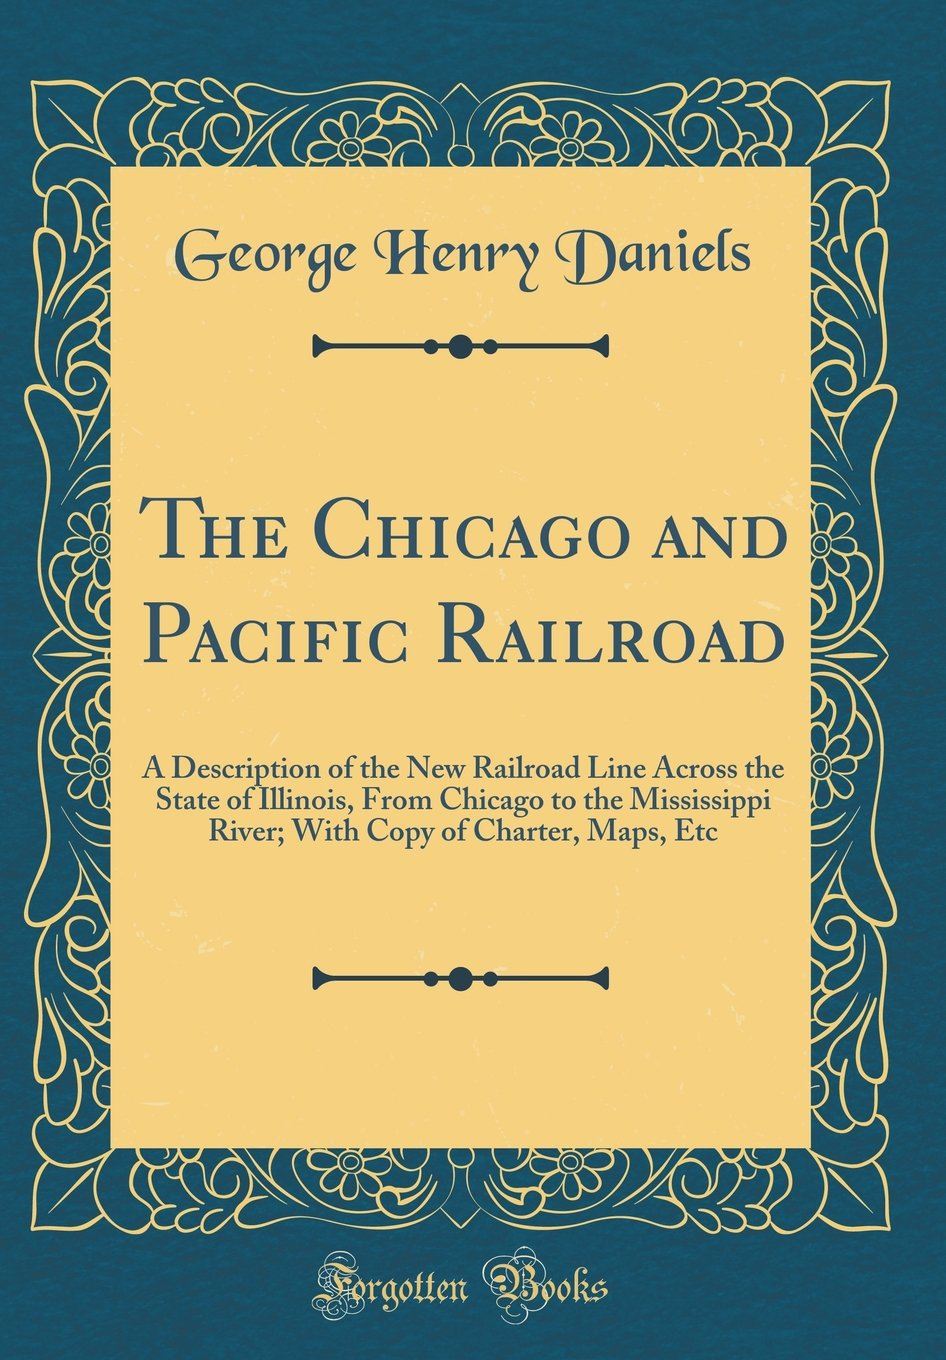 The Chicago and Pacific Railroad: A Description of the New Railroad Line Across the State of Illinois, From Chicago to the Mississippi River; With Copy of Charter, Maps, Etc (Classic Reprint) pdf epub